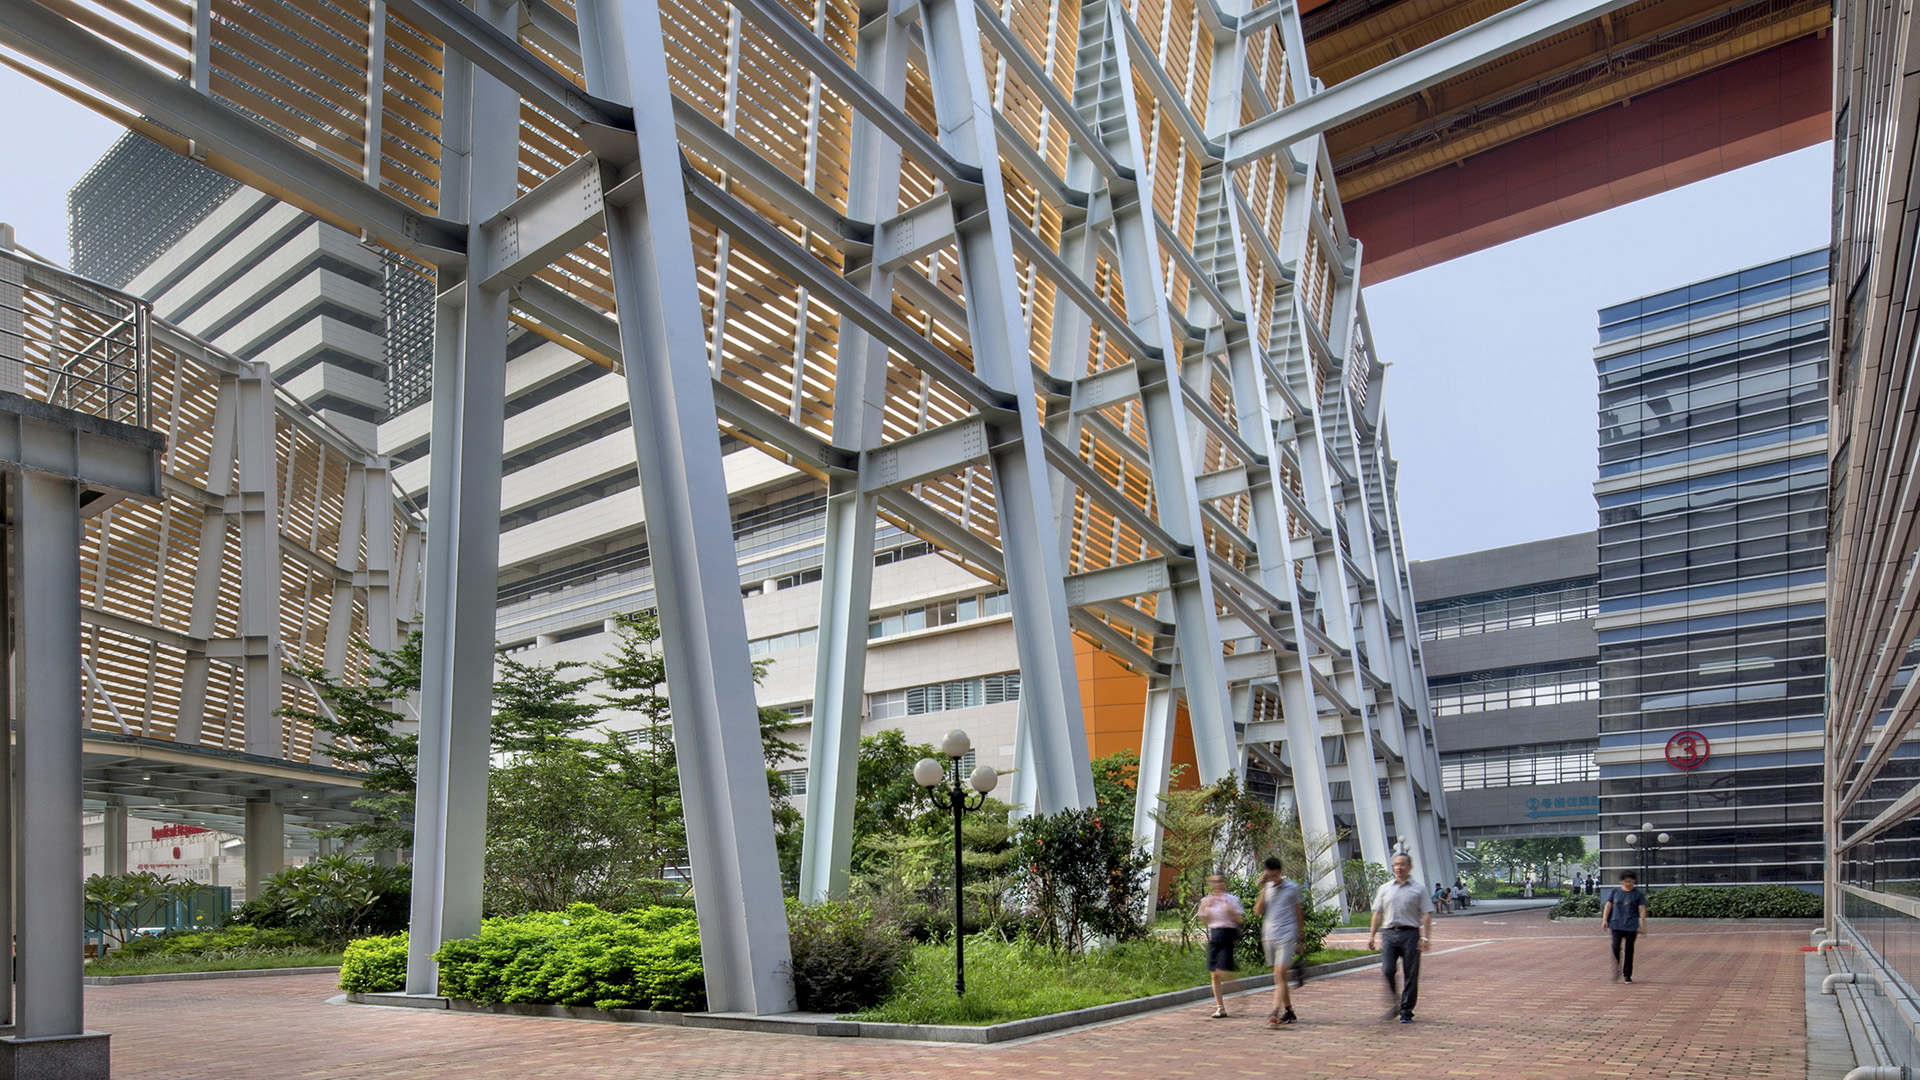 Biophilic design principles were key in the architecture of Shunde Hospital of Southern Medical University in China.